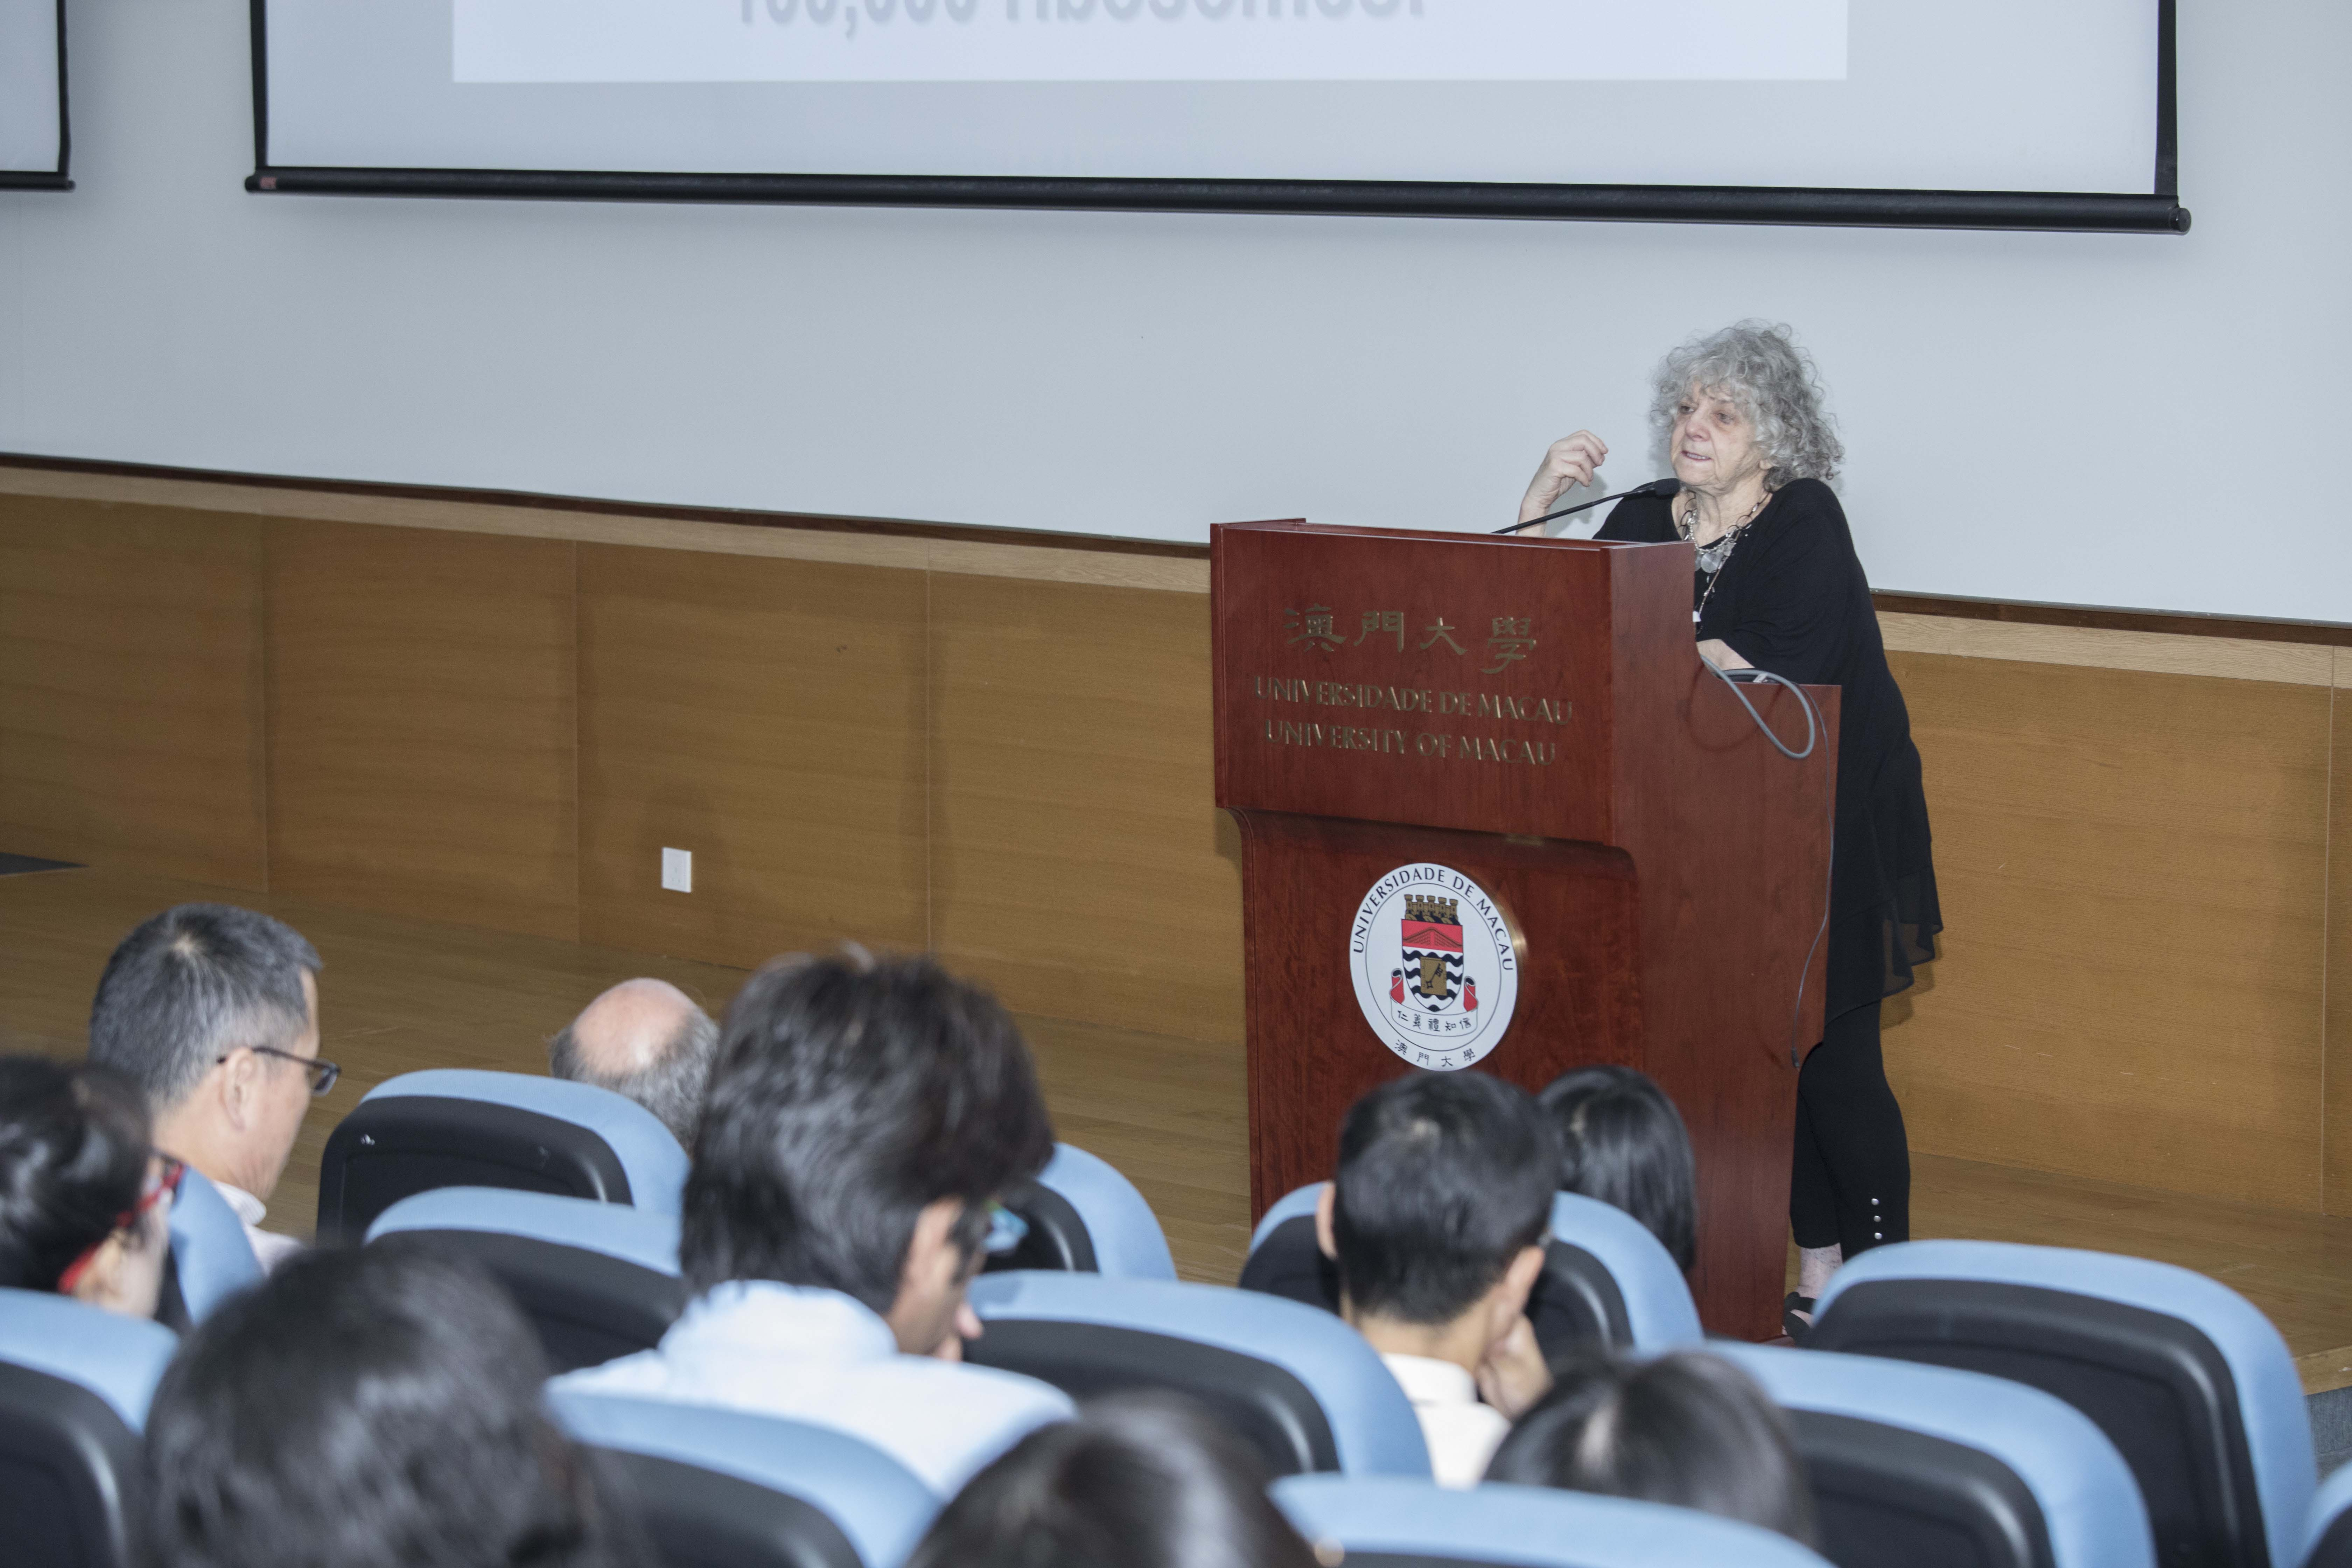 Prof Yonath gives a talk on resistance to antibiotics and the origin of life